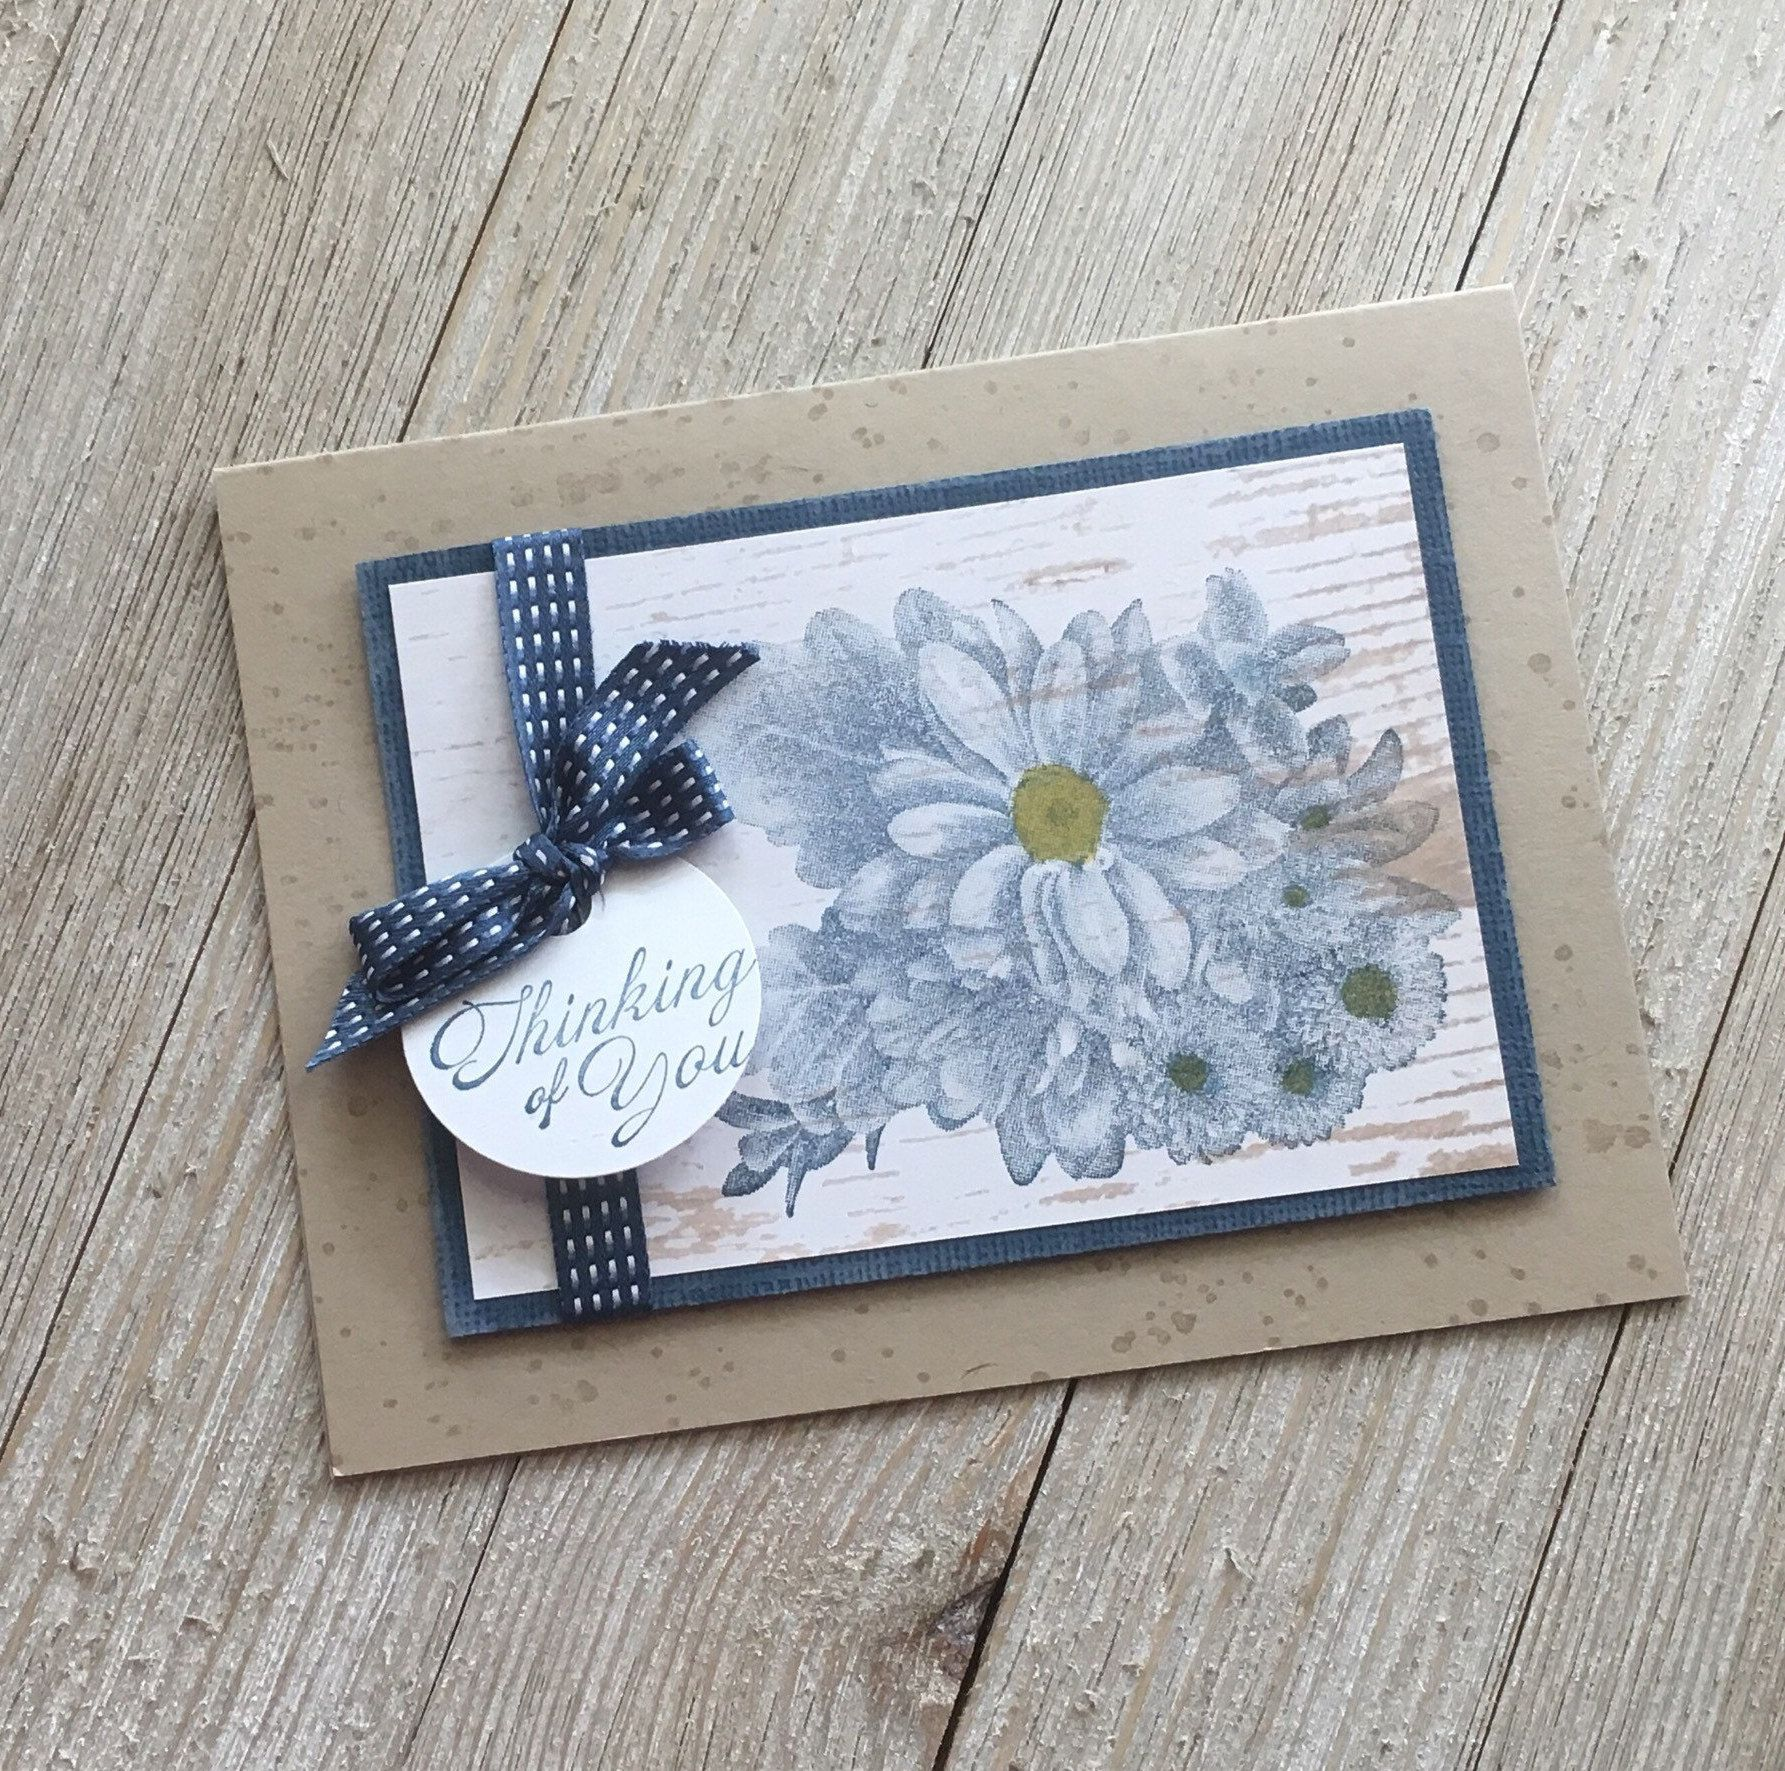 Thinking of you cards friendship cards floral cards handmade